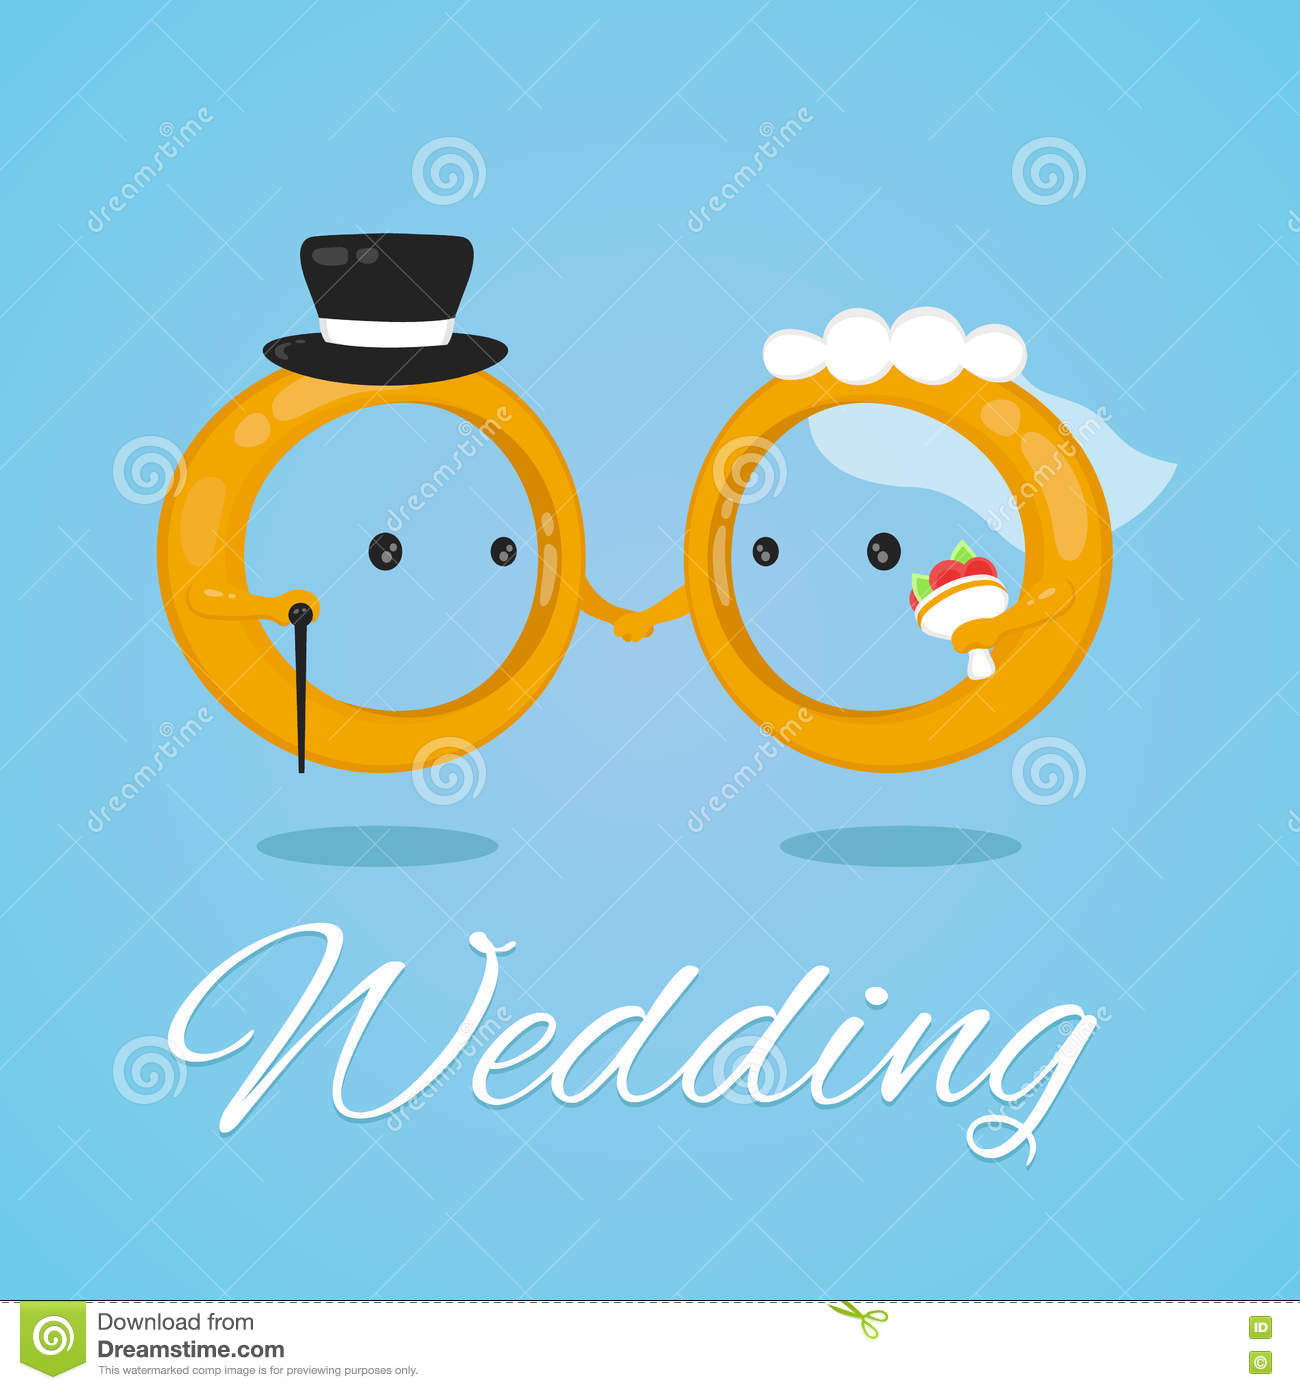 wedding ring vector flat design illustration character. bride and